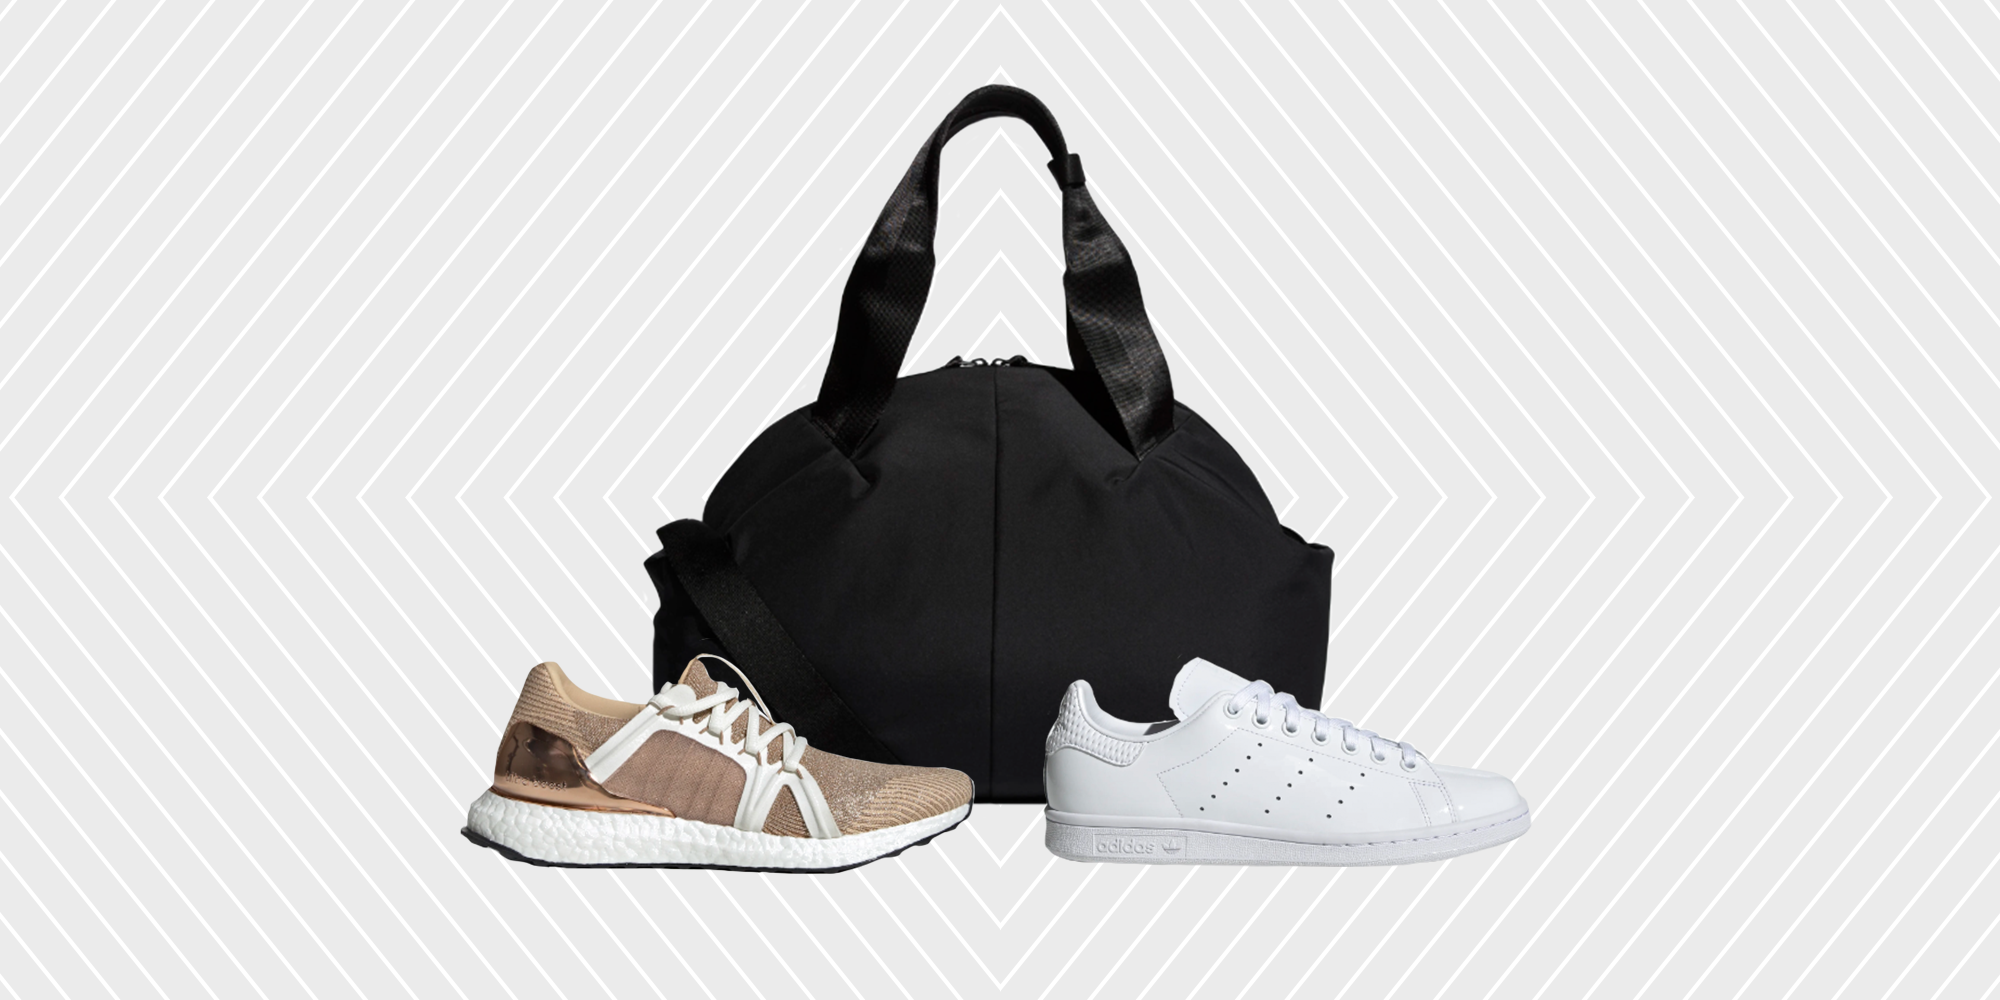 Adidas Is Having Another Incredible Sale on Sneakers, Clothing, and Accessories